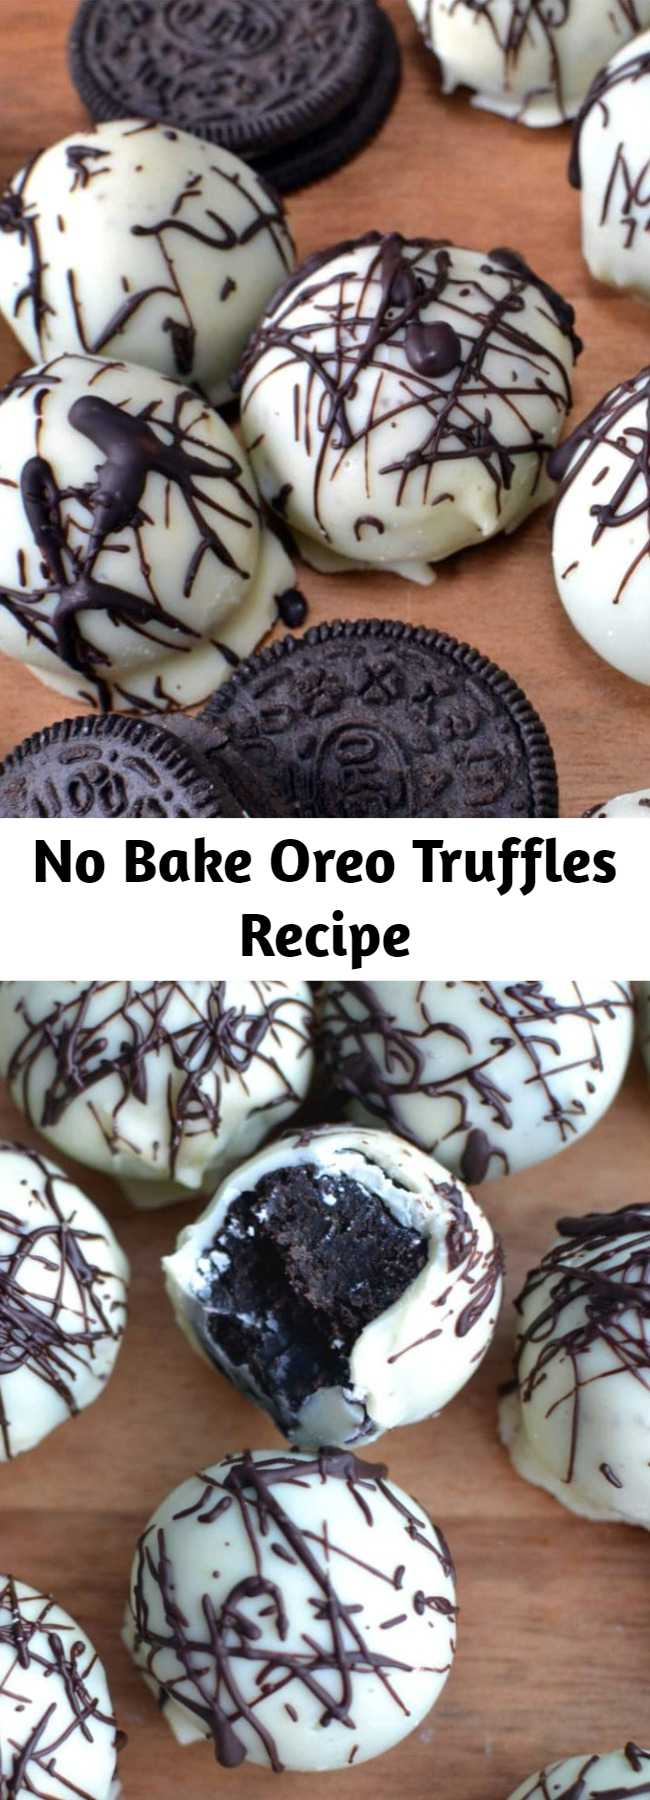 No Bake Oreo Truffles Recipe - These no bake Oreo Truffles have a sweet outer chocolate shell that surrounds a decadent, chocolate Oreo filling- and you only need 4 ingredients! #nobake #Oreos